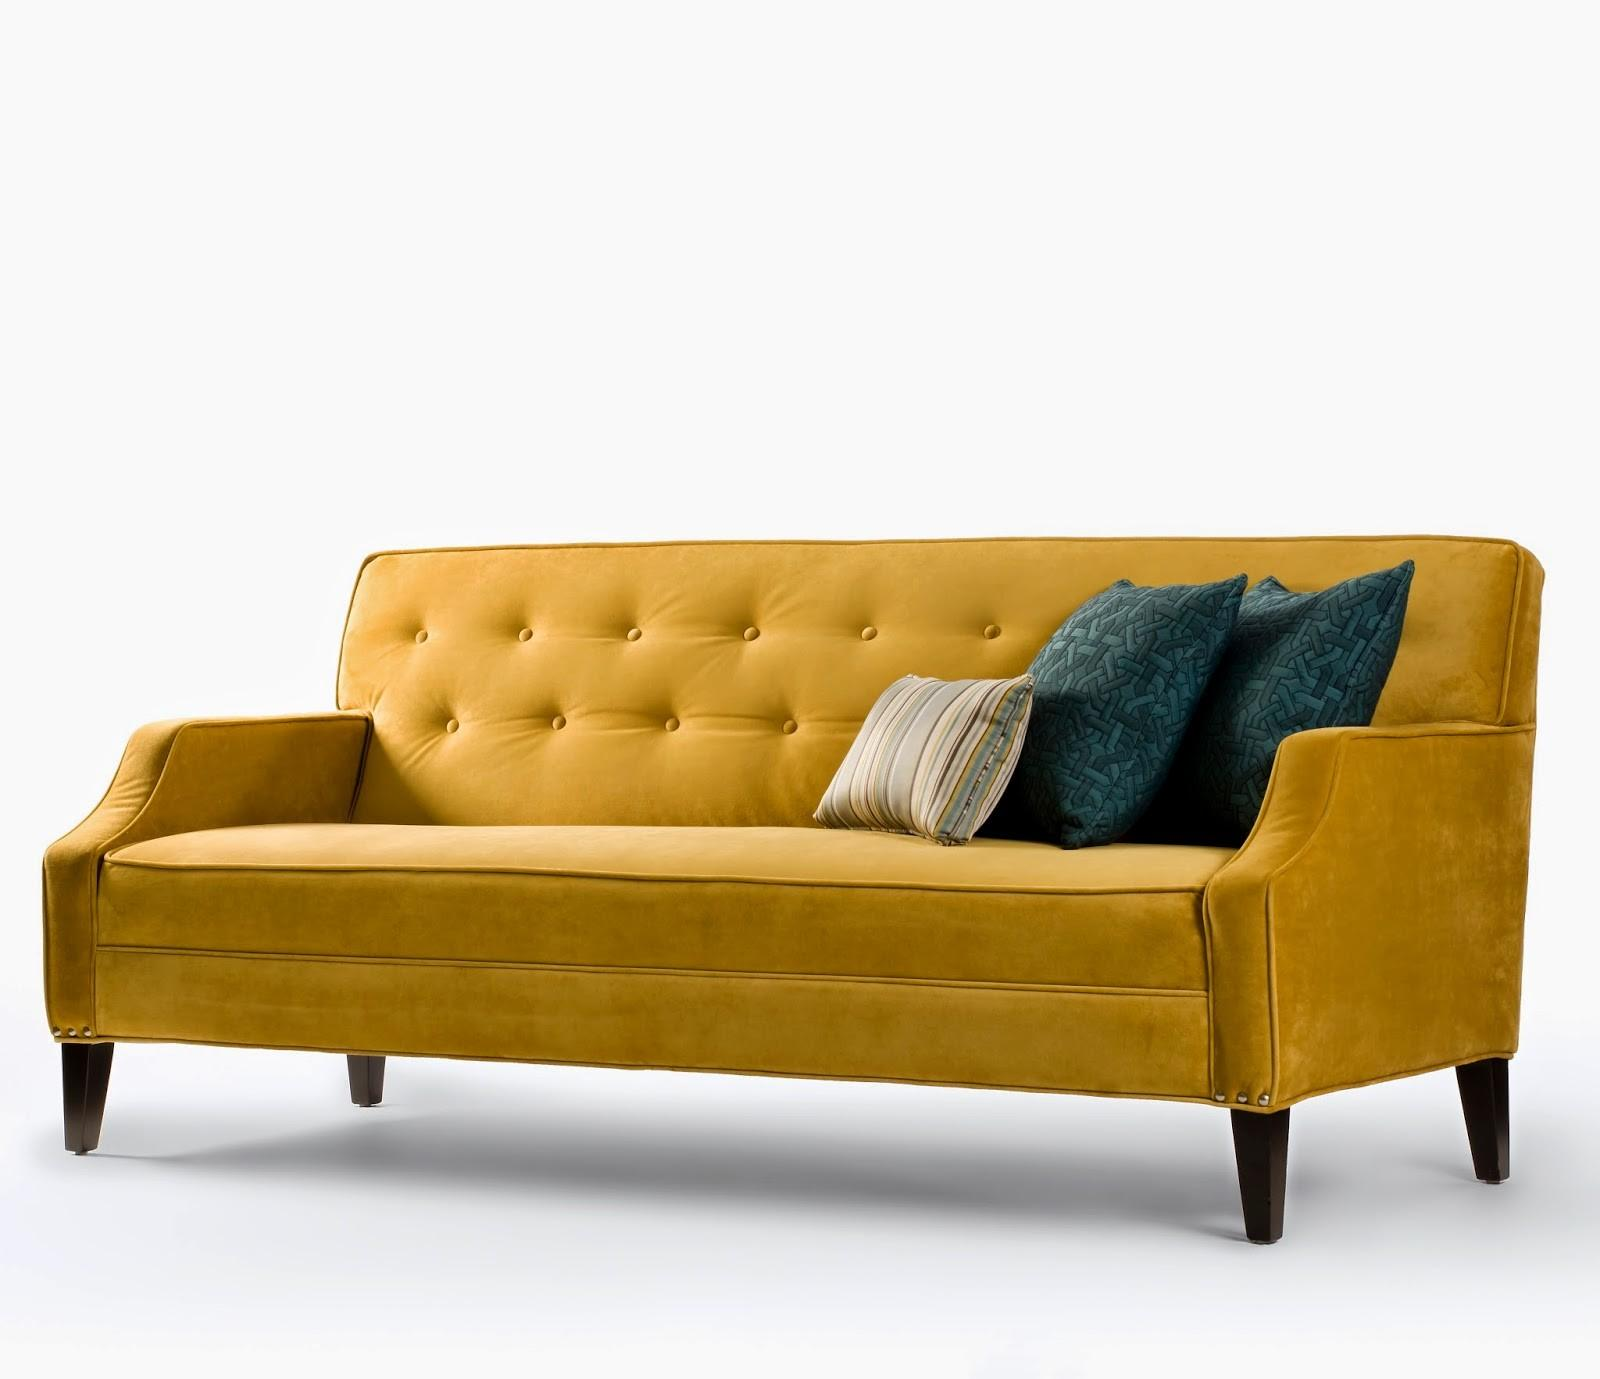 Modern Tufted Couch Yellow Color Wooden Legs